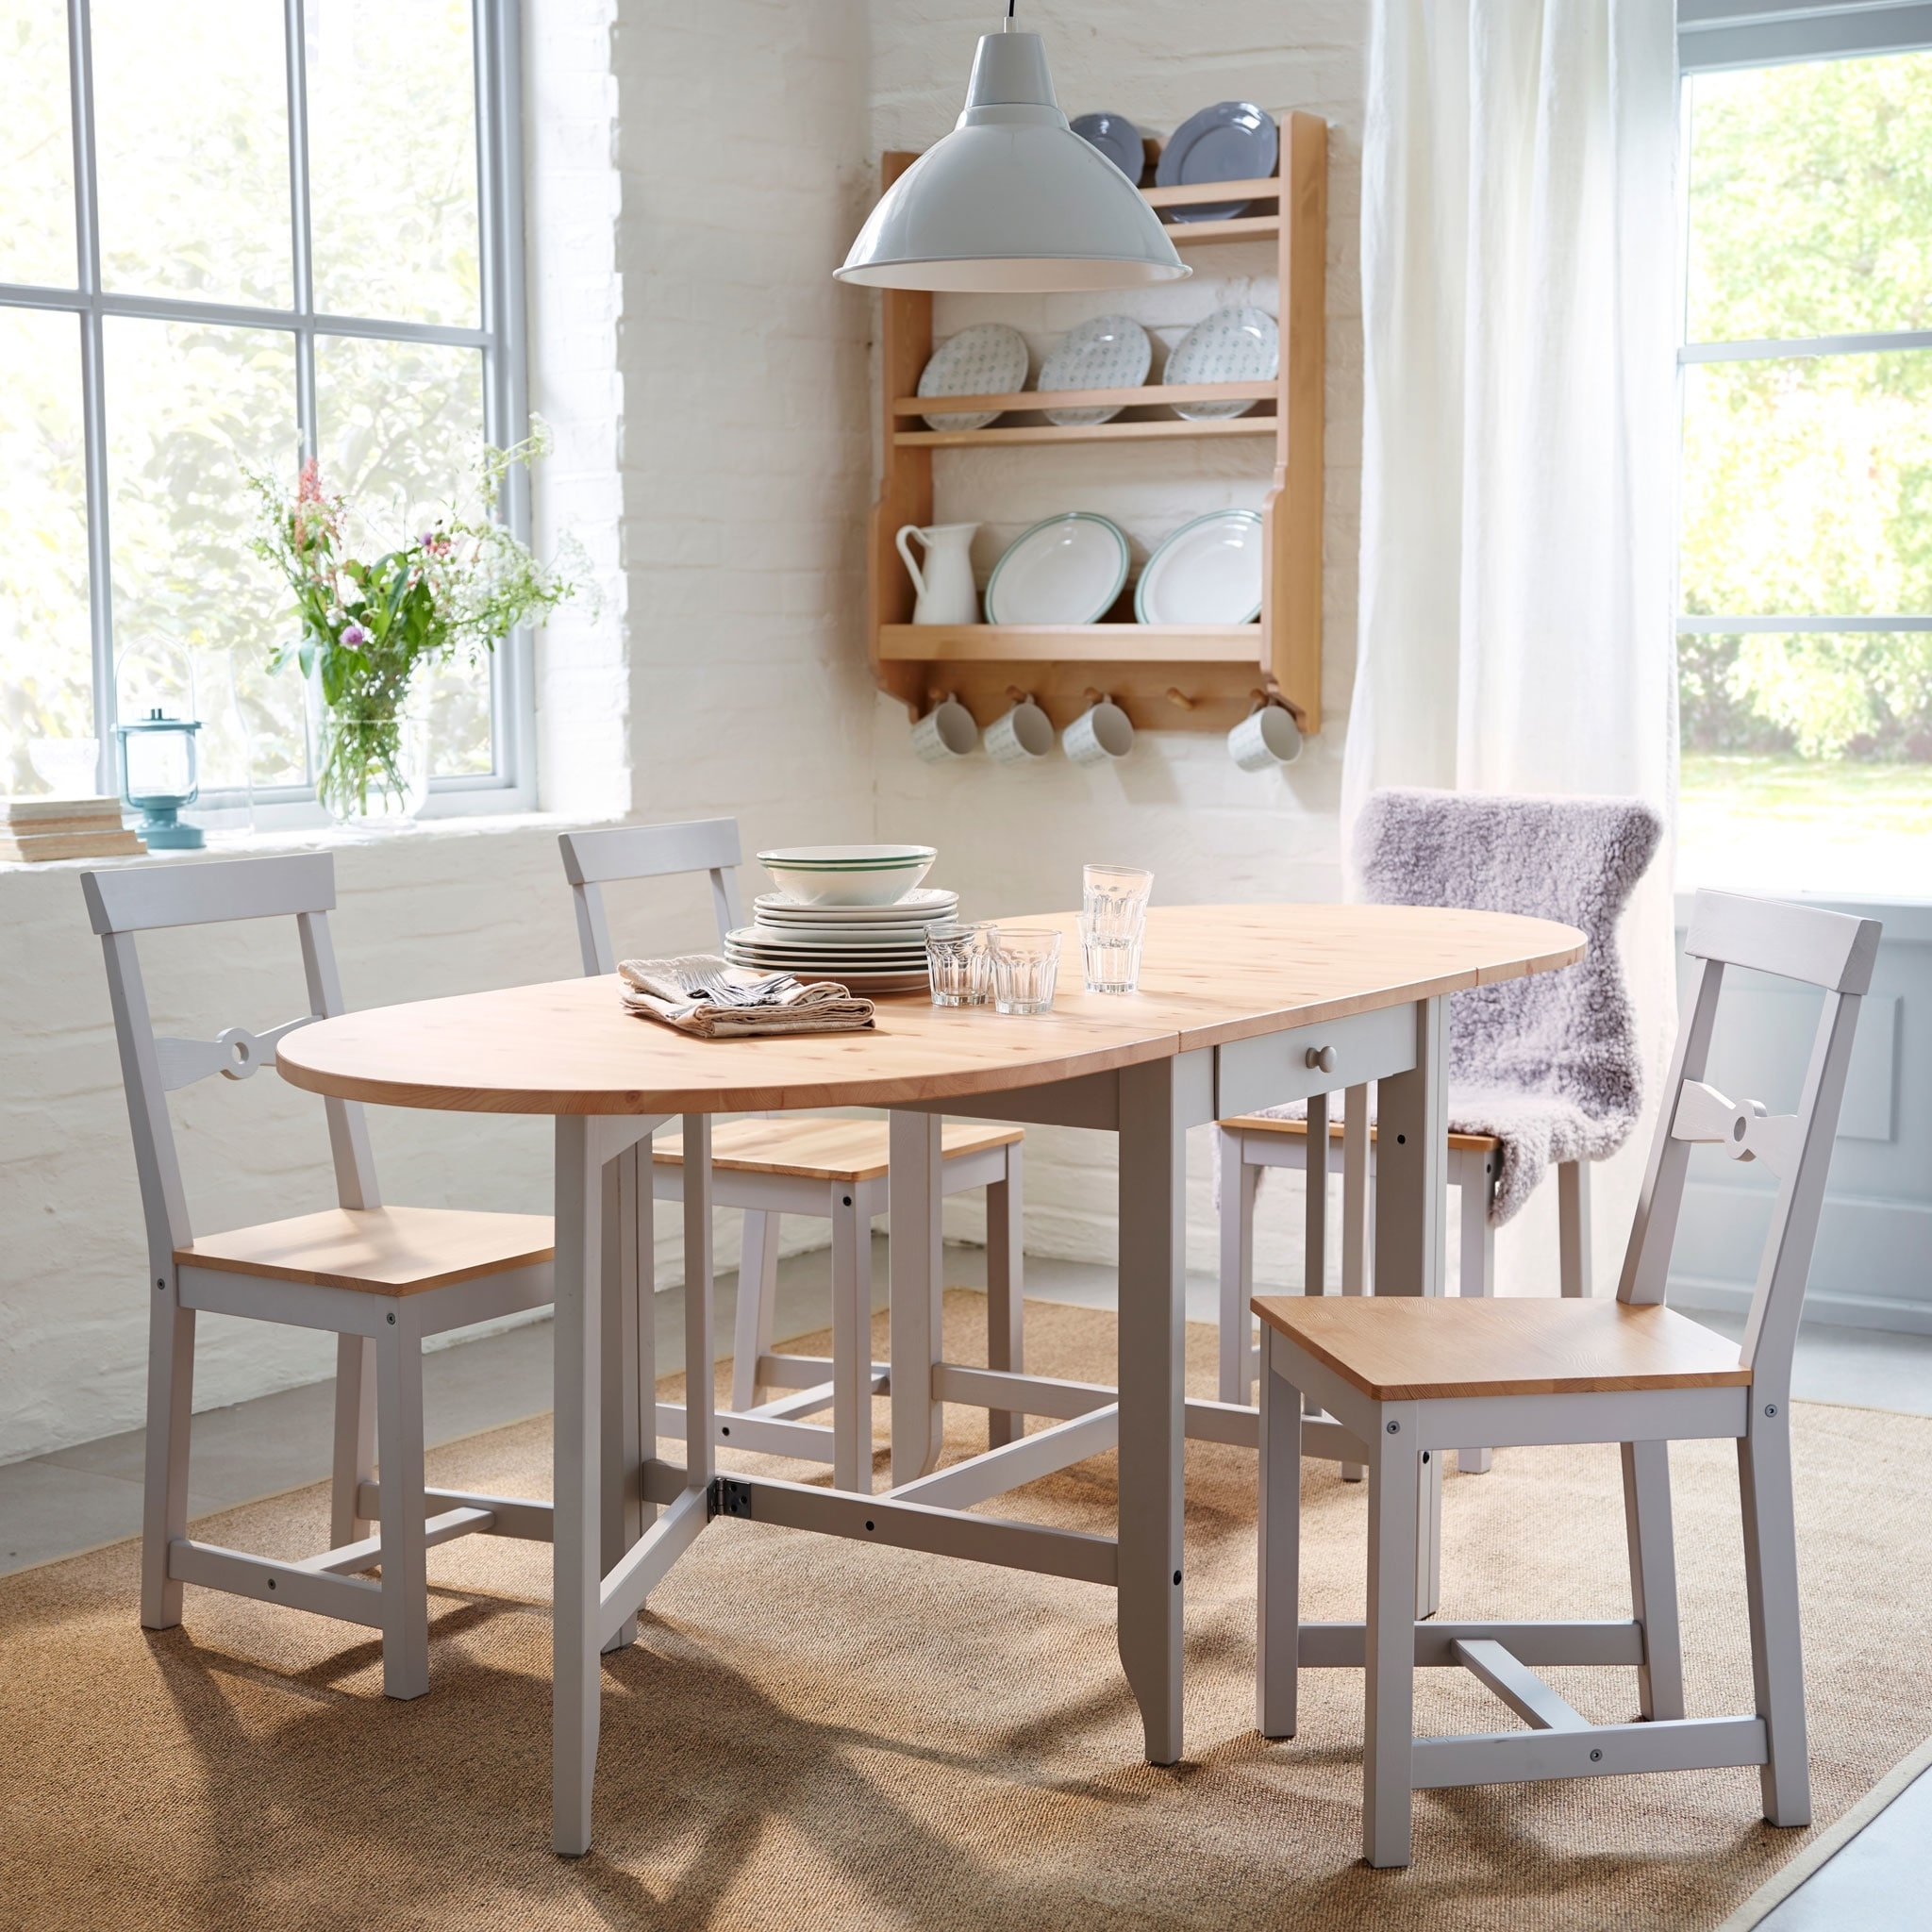 Dining Room Tables And Chairs in Well-known Dining Room Furniture & Ideas